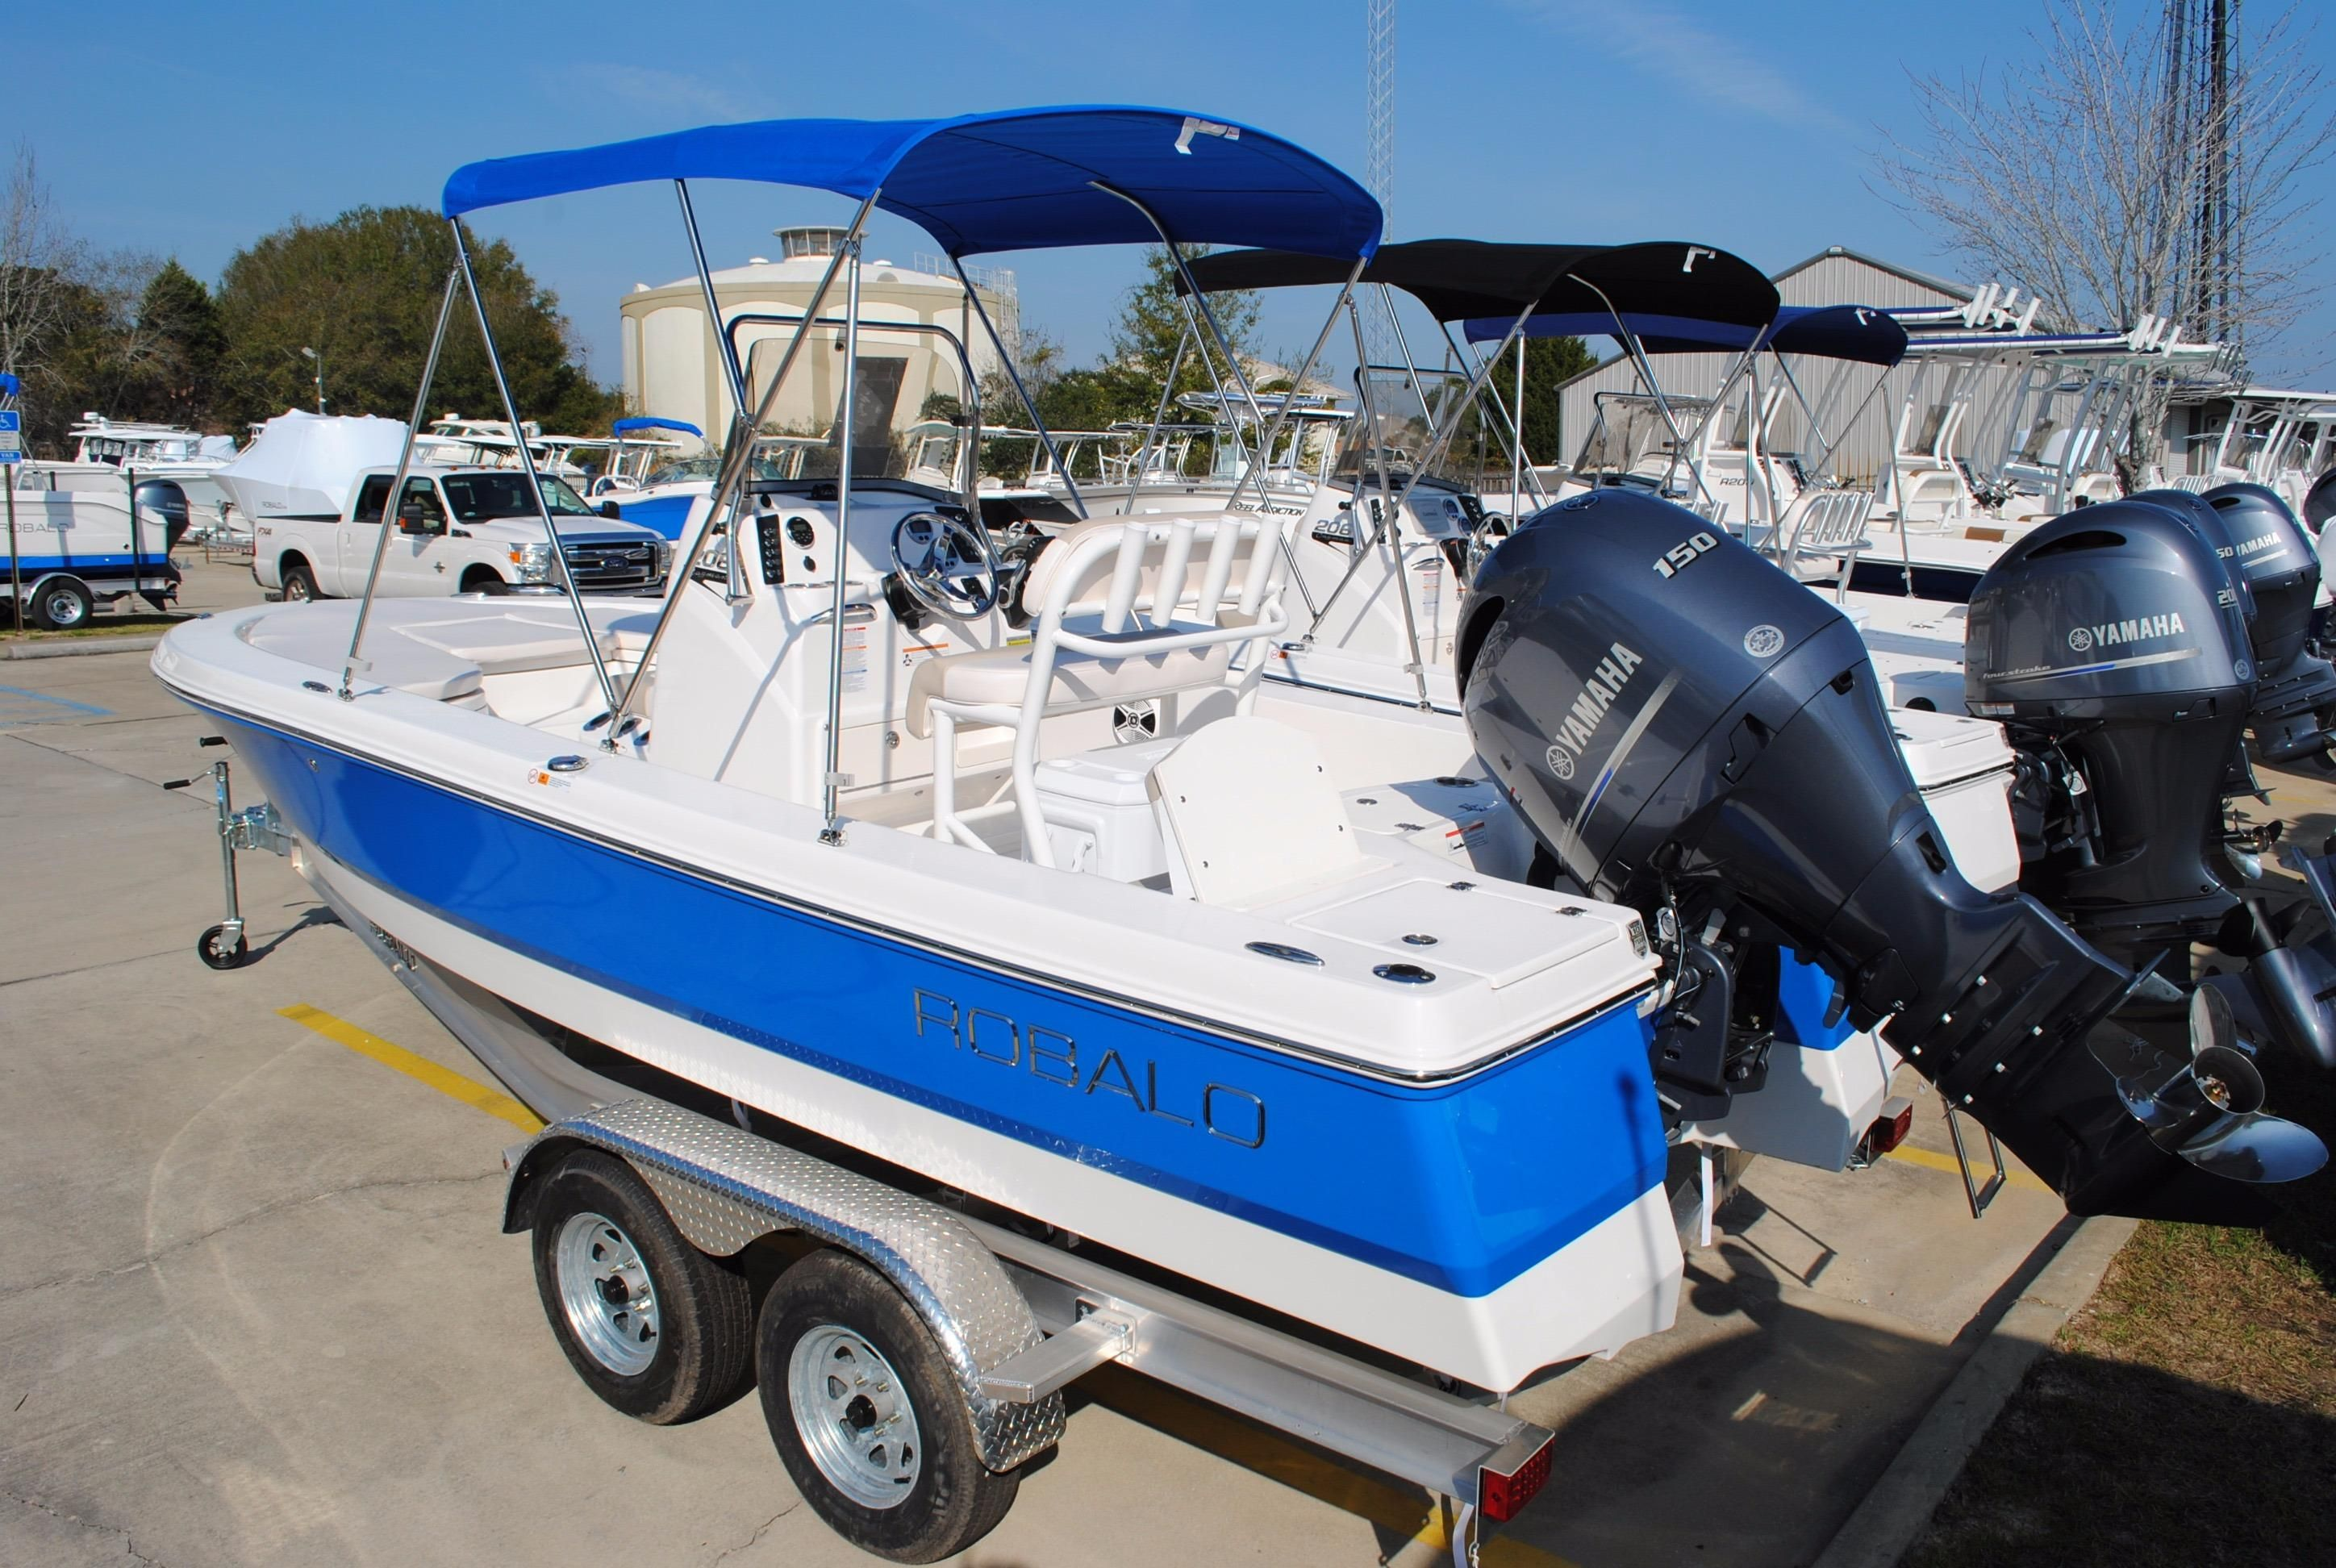 2017 robalo 206 cayman bay boat power boat for sale www for Robalo fish in english